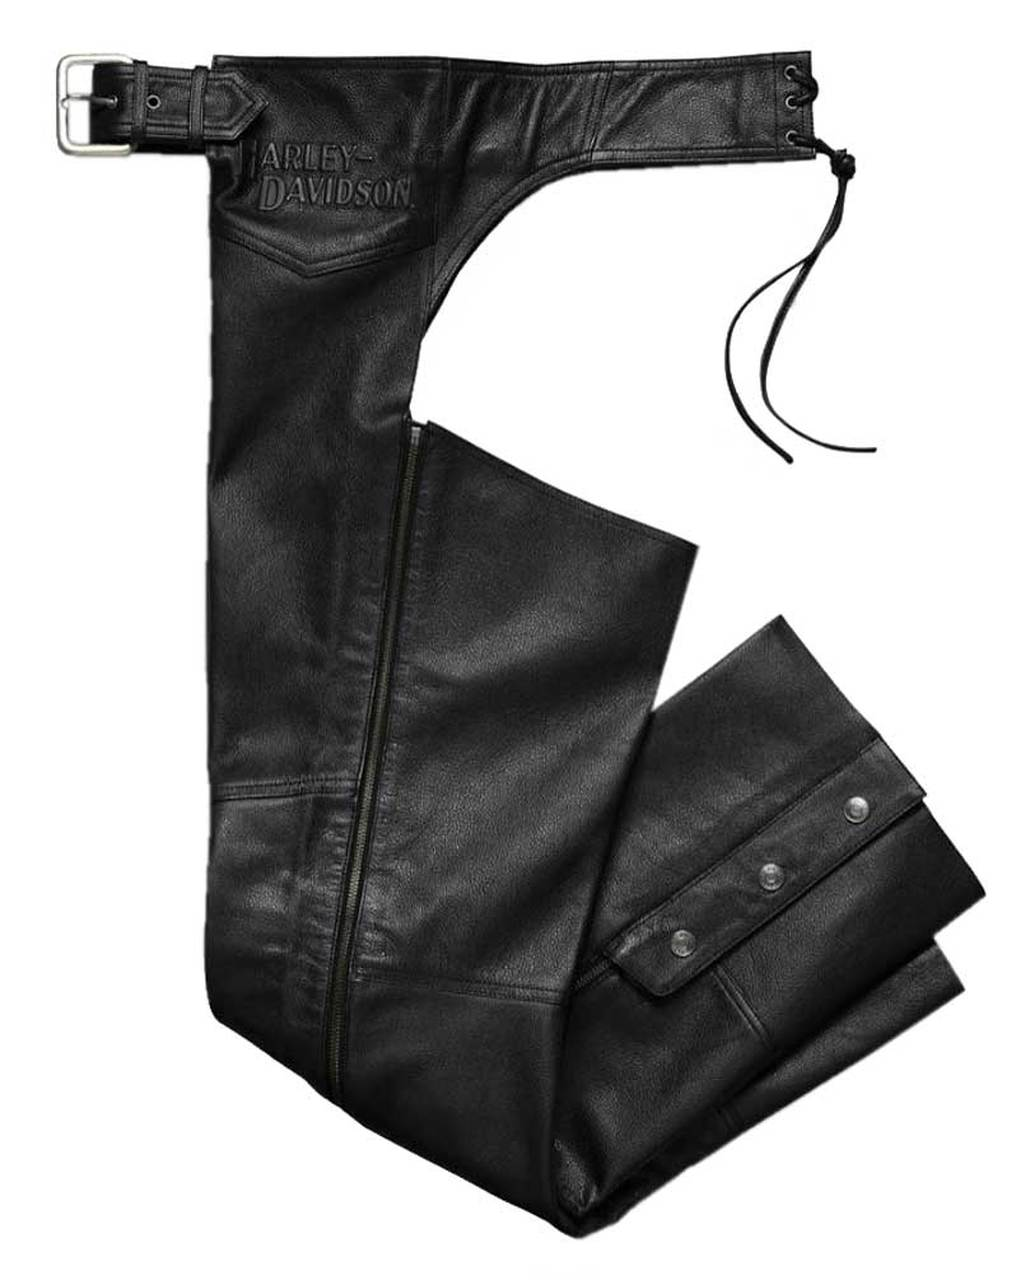 Harley-Davidson® Men's Stock II Midweight Leather Chaps - Black